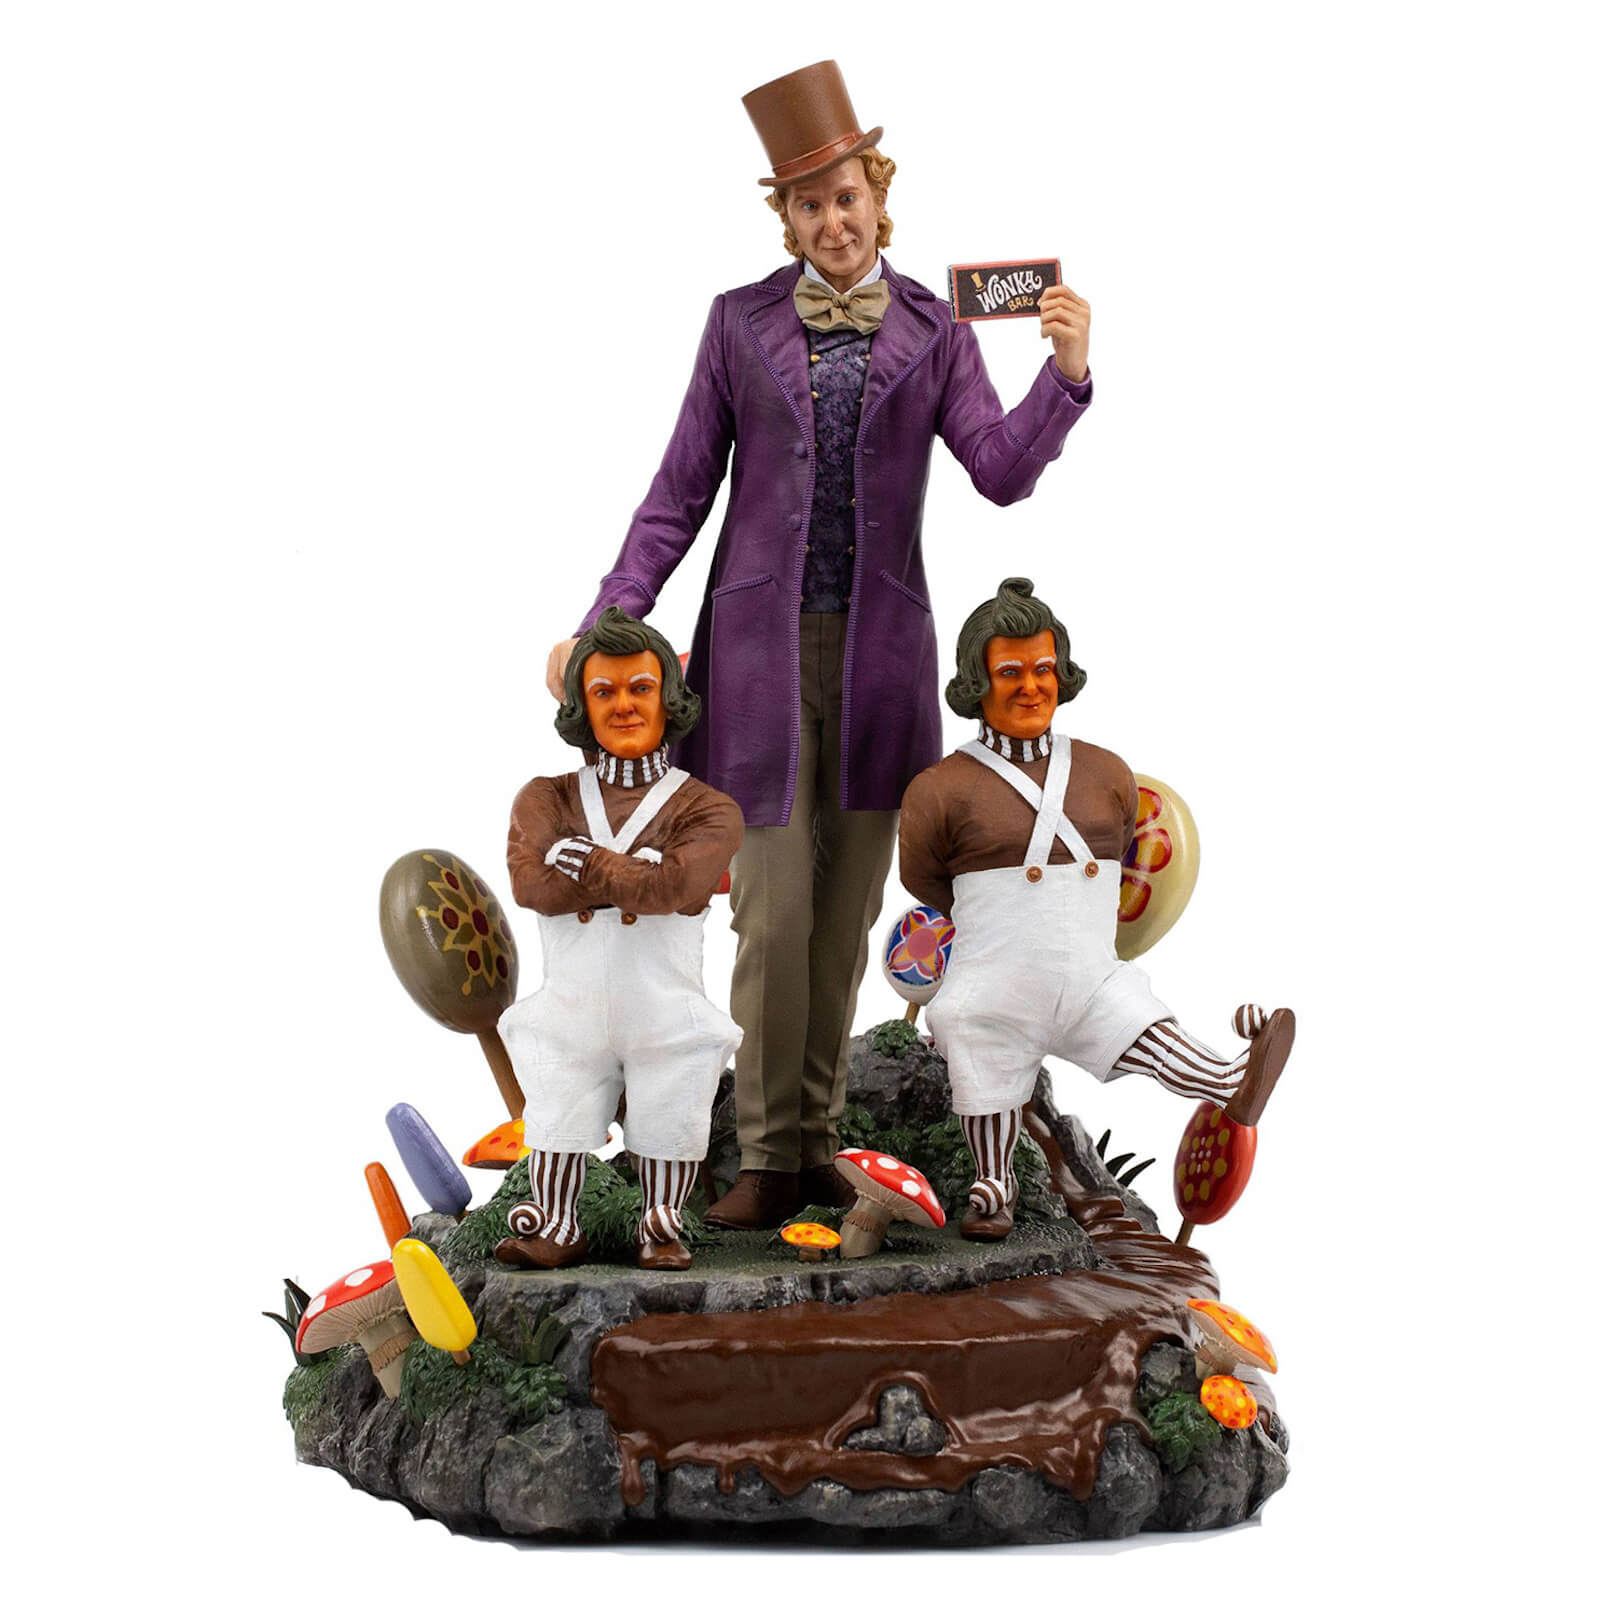 Iron Studios Willy Wonka & the Chocolate Factory (1971) Deluxe Art Scale Statue 1/10 Willy Wonka 25 cm